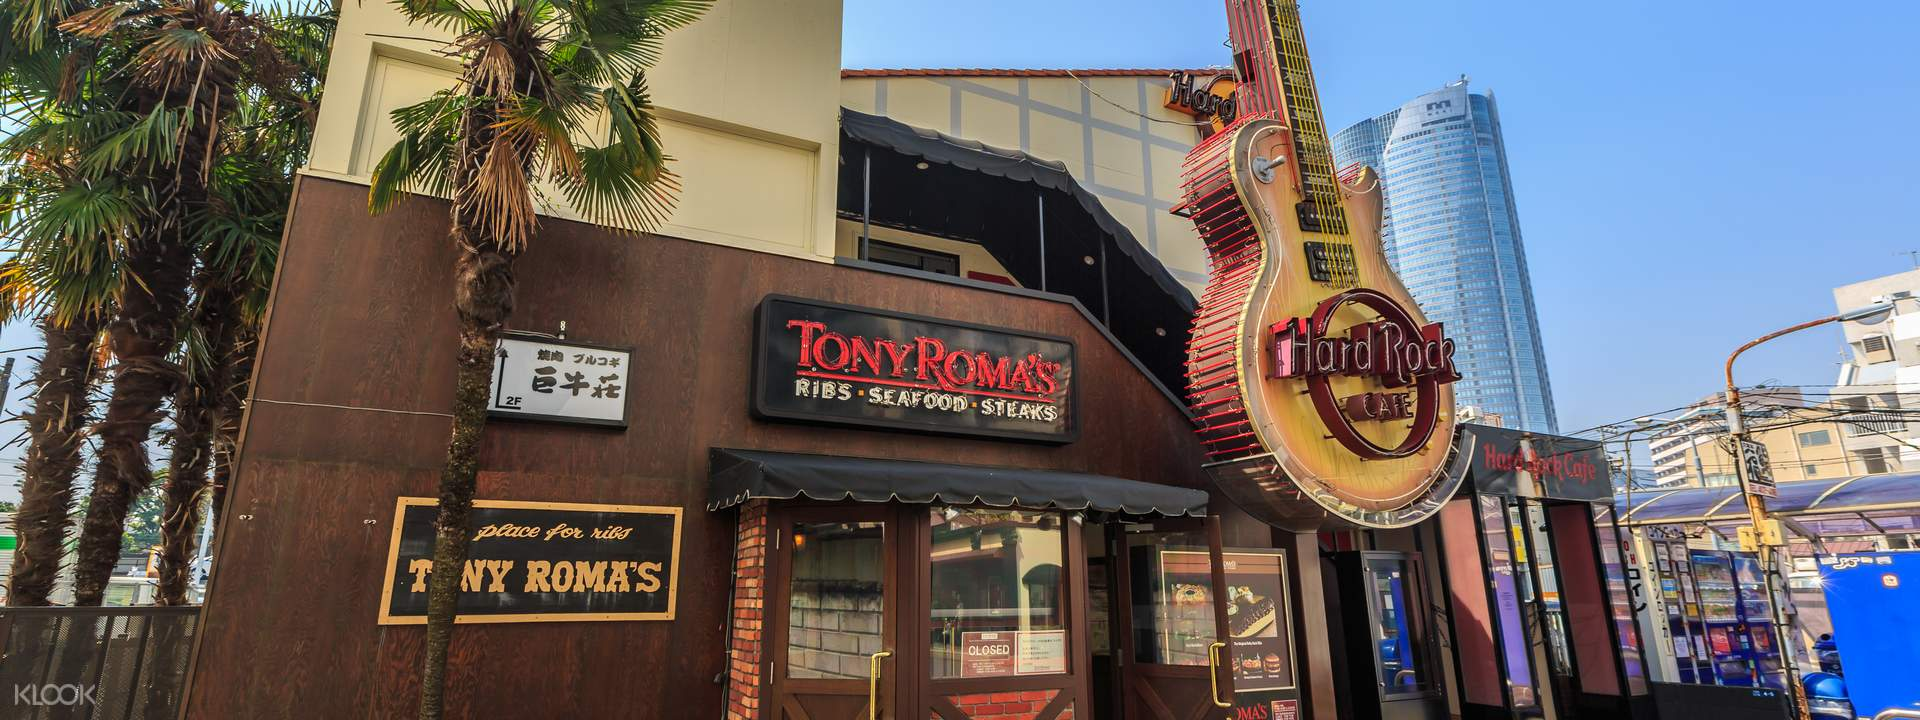 Surfers Paradise Hard Rock Cafe Meal Discount - Klook